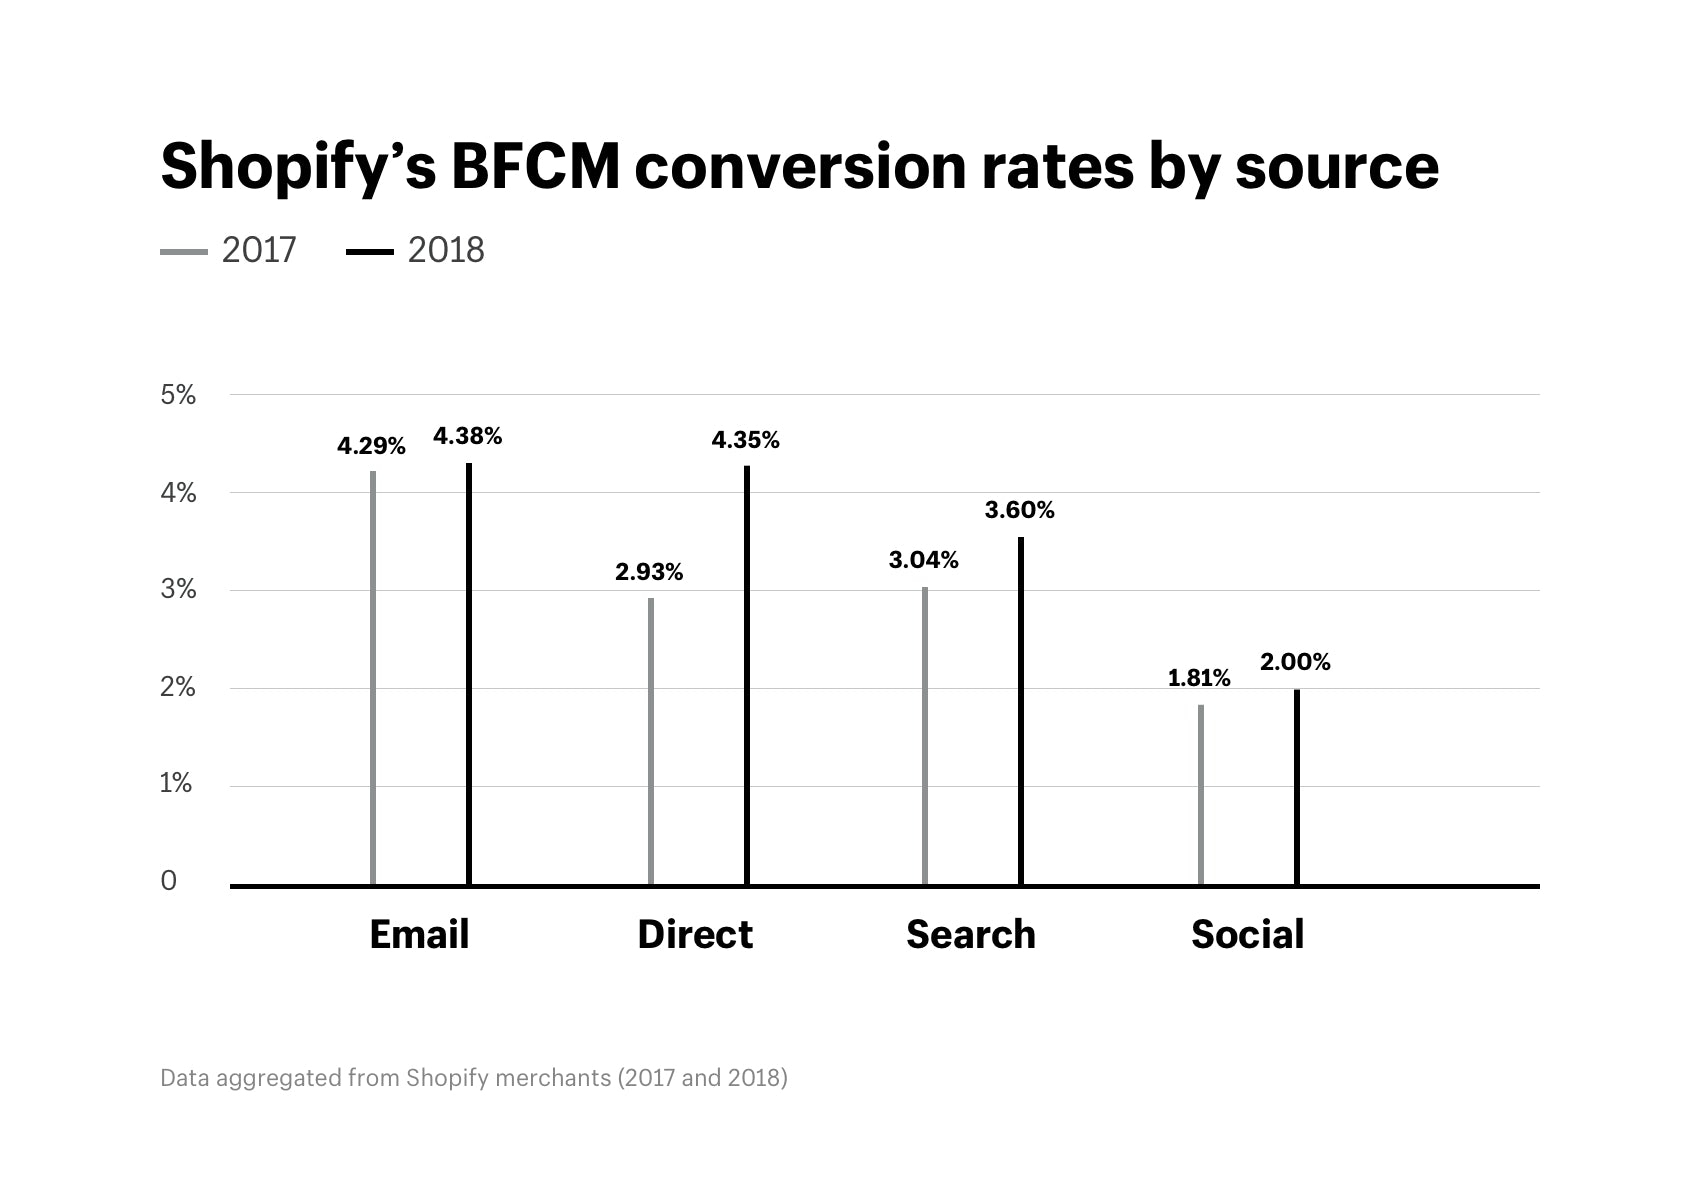 Shopify's BFCM conversion rates by source